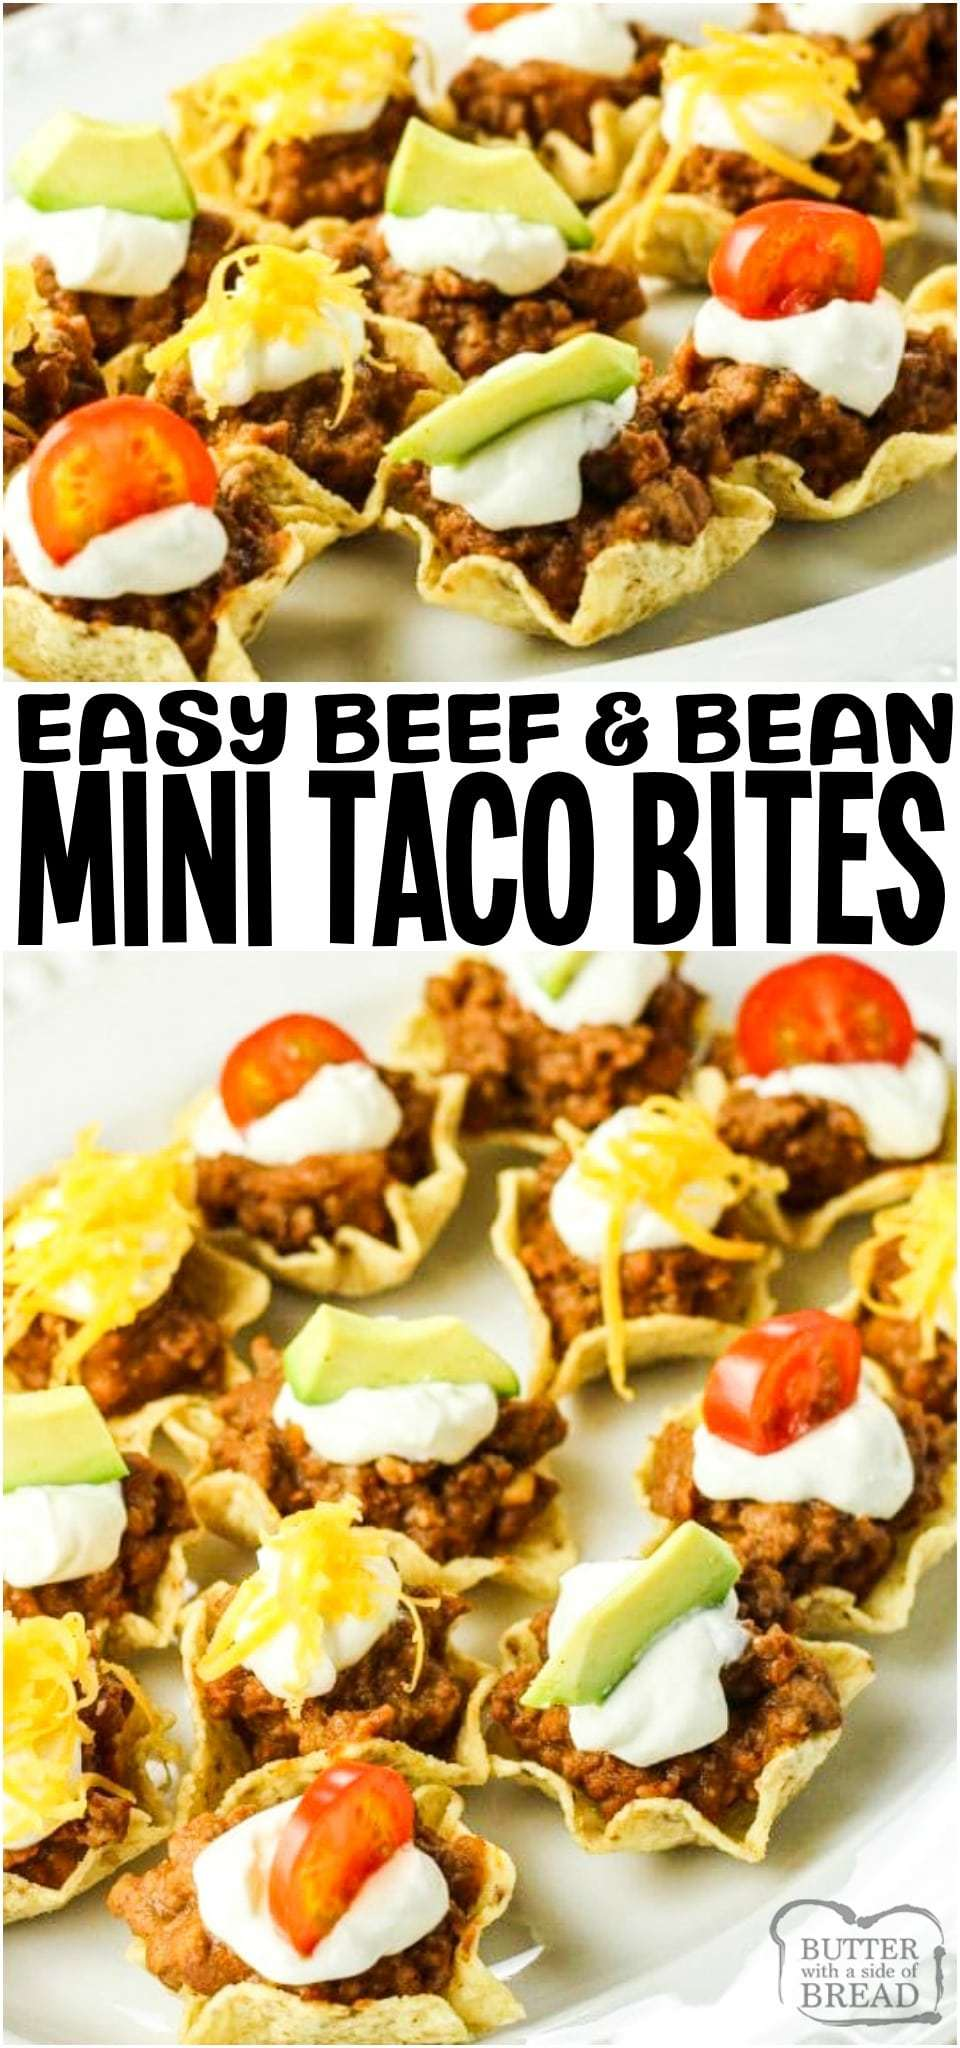 Taco Bites are tortilla chips filled with a combination of ground beef, refried beans and taco seasoning topped off with your favorite toppings. These mini taco bites are perfect to serve as an appetizer or a fun family meal. #tacos #beef #bean #cheese #appetizer #minitacos from BUTTER WITH A SIDE OF BREAD